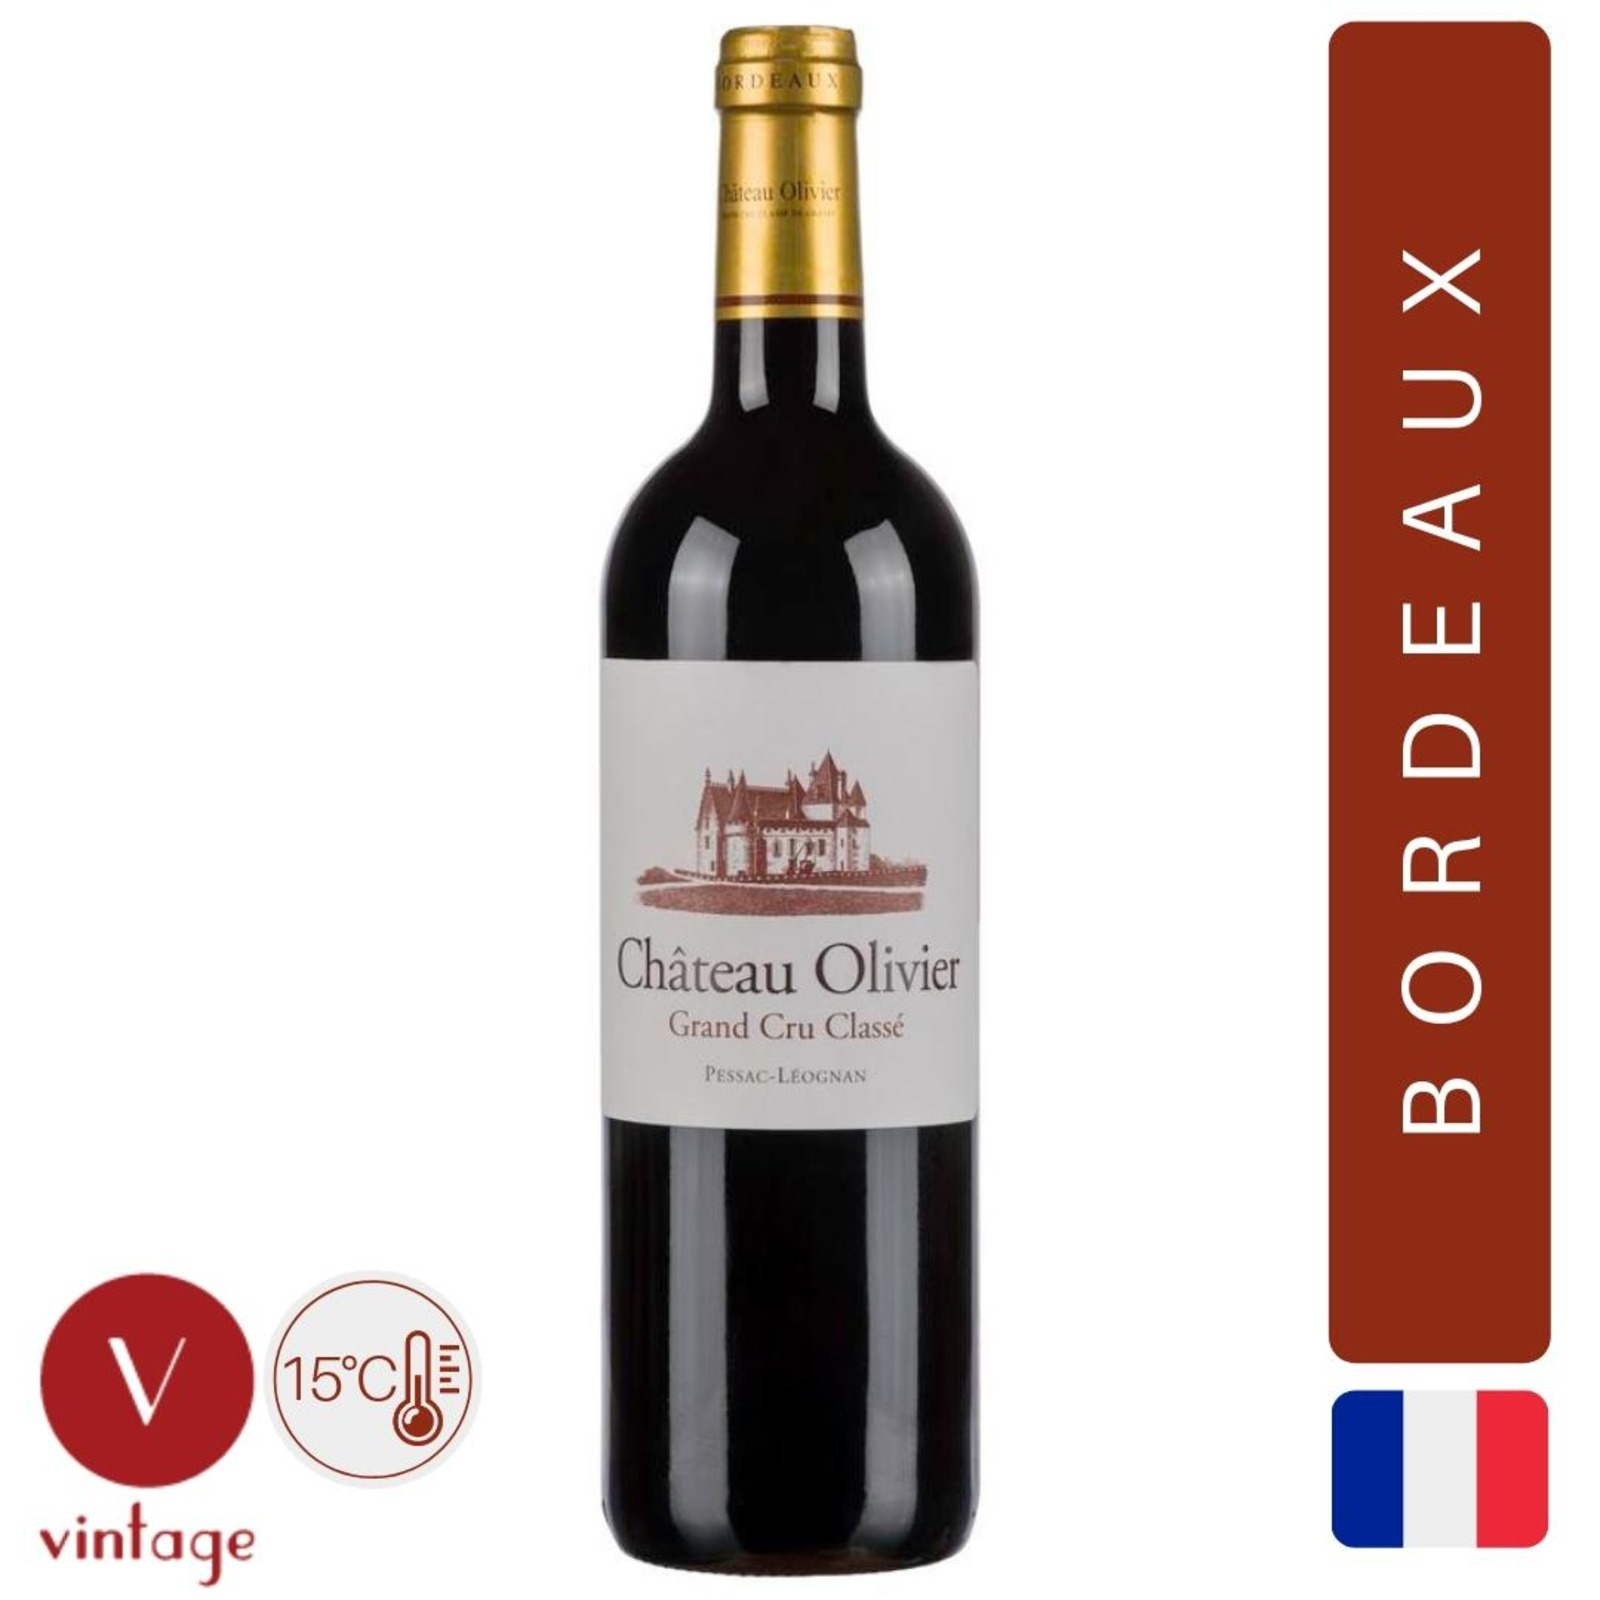 Chateau Olivier - Pessac Leognan 2012 - Red Wine